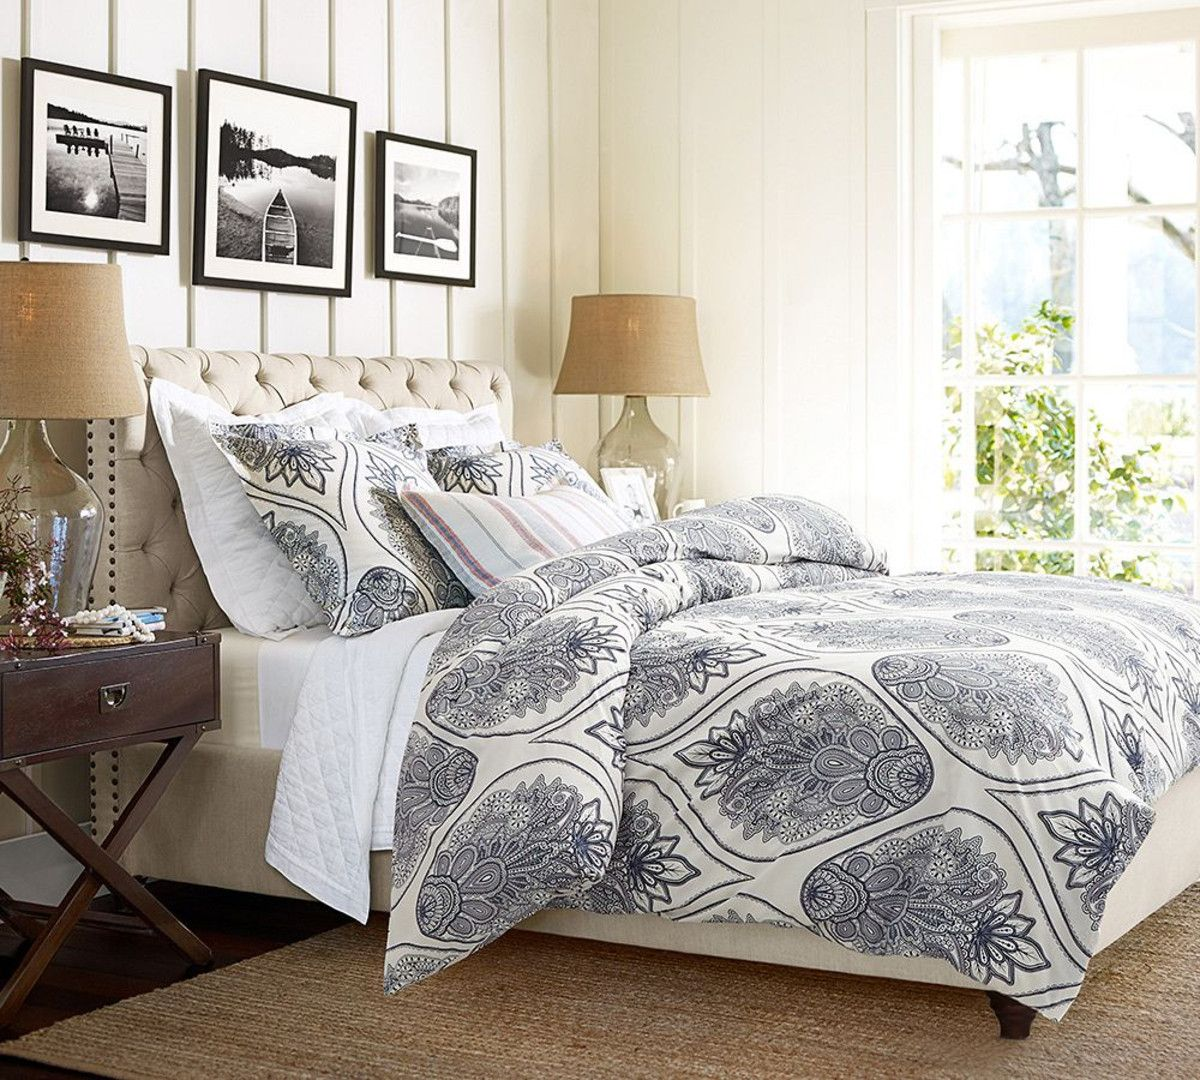 Pottery Barn Upholstered Headboard With Gorgeous Designs ...